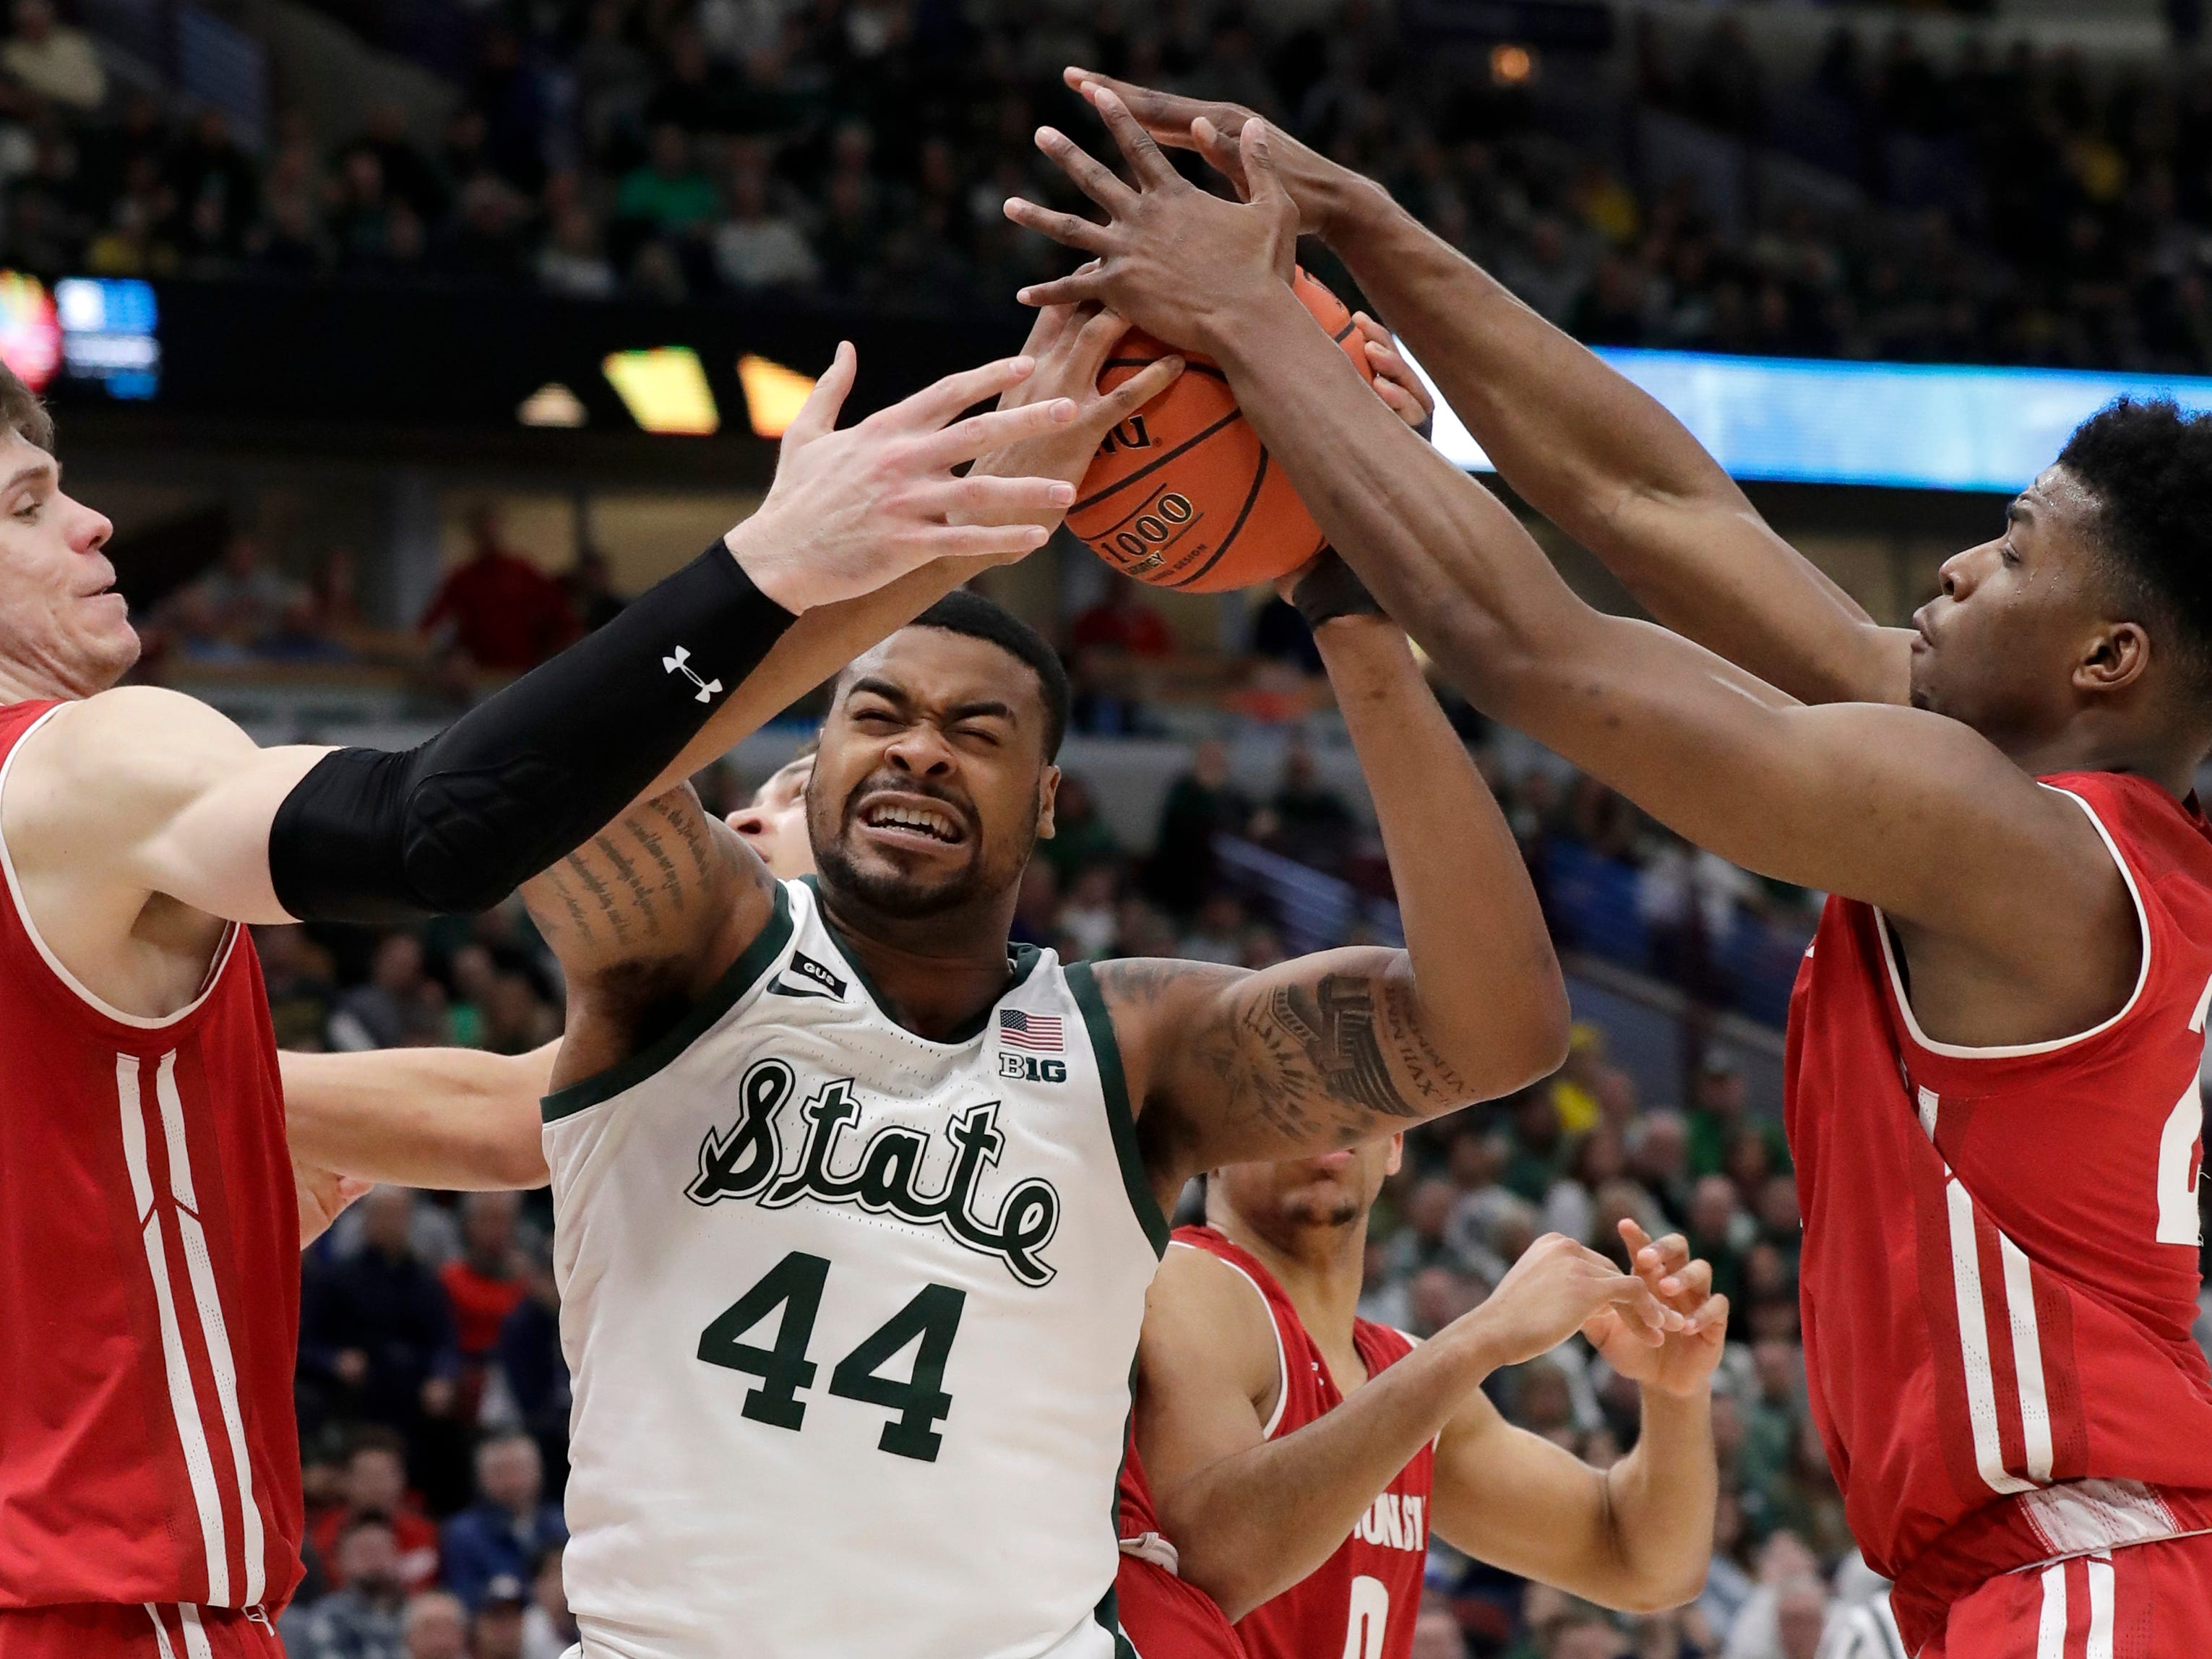 Michigan State's Nick Ward battles for a rebound against Wisconsin's Ethan Happ (22) and Aleem Ford during the second half.